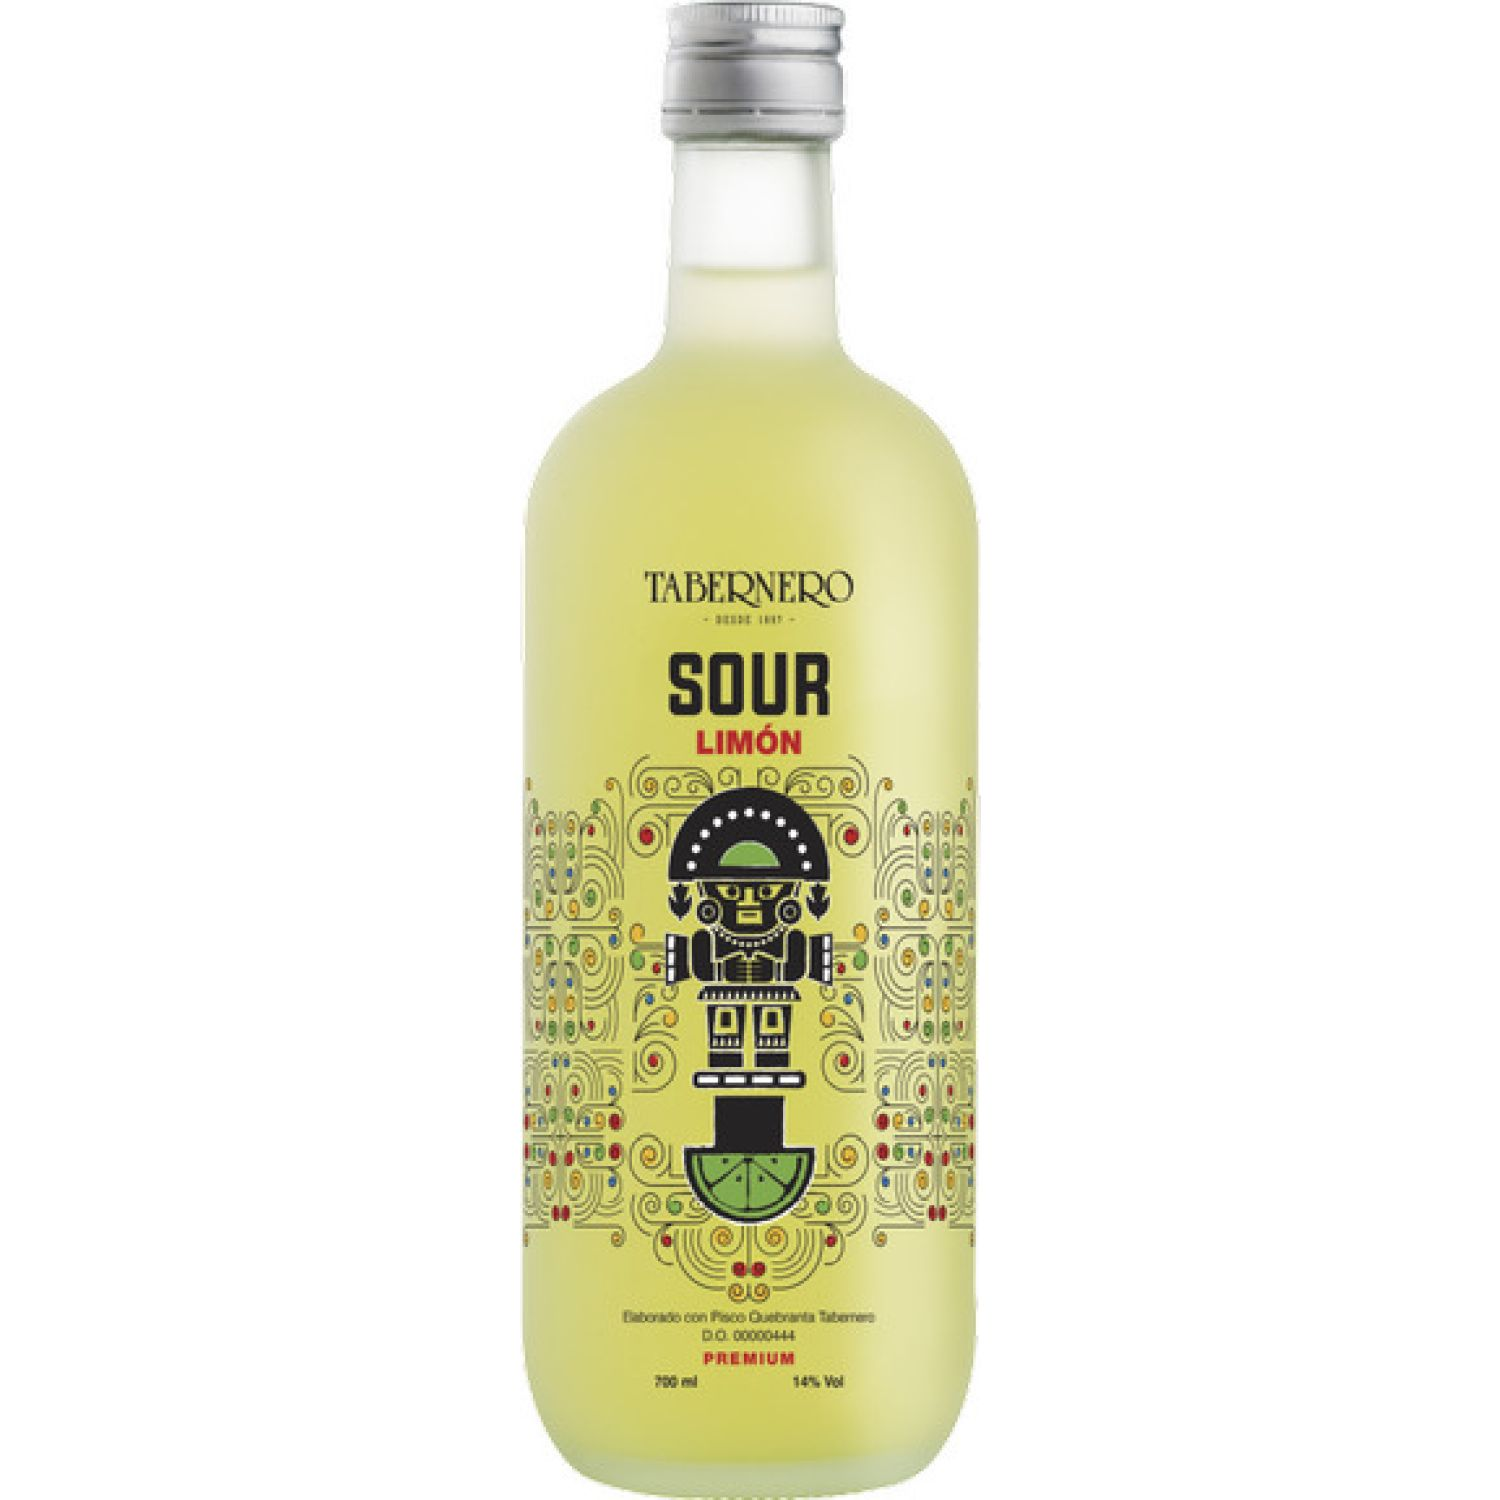 TABERNERO Pisco Sour Limón  700ml SIN COLOR Licores preparados